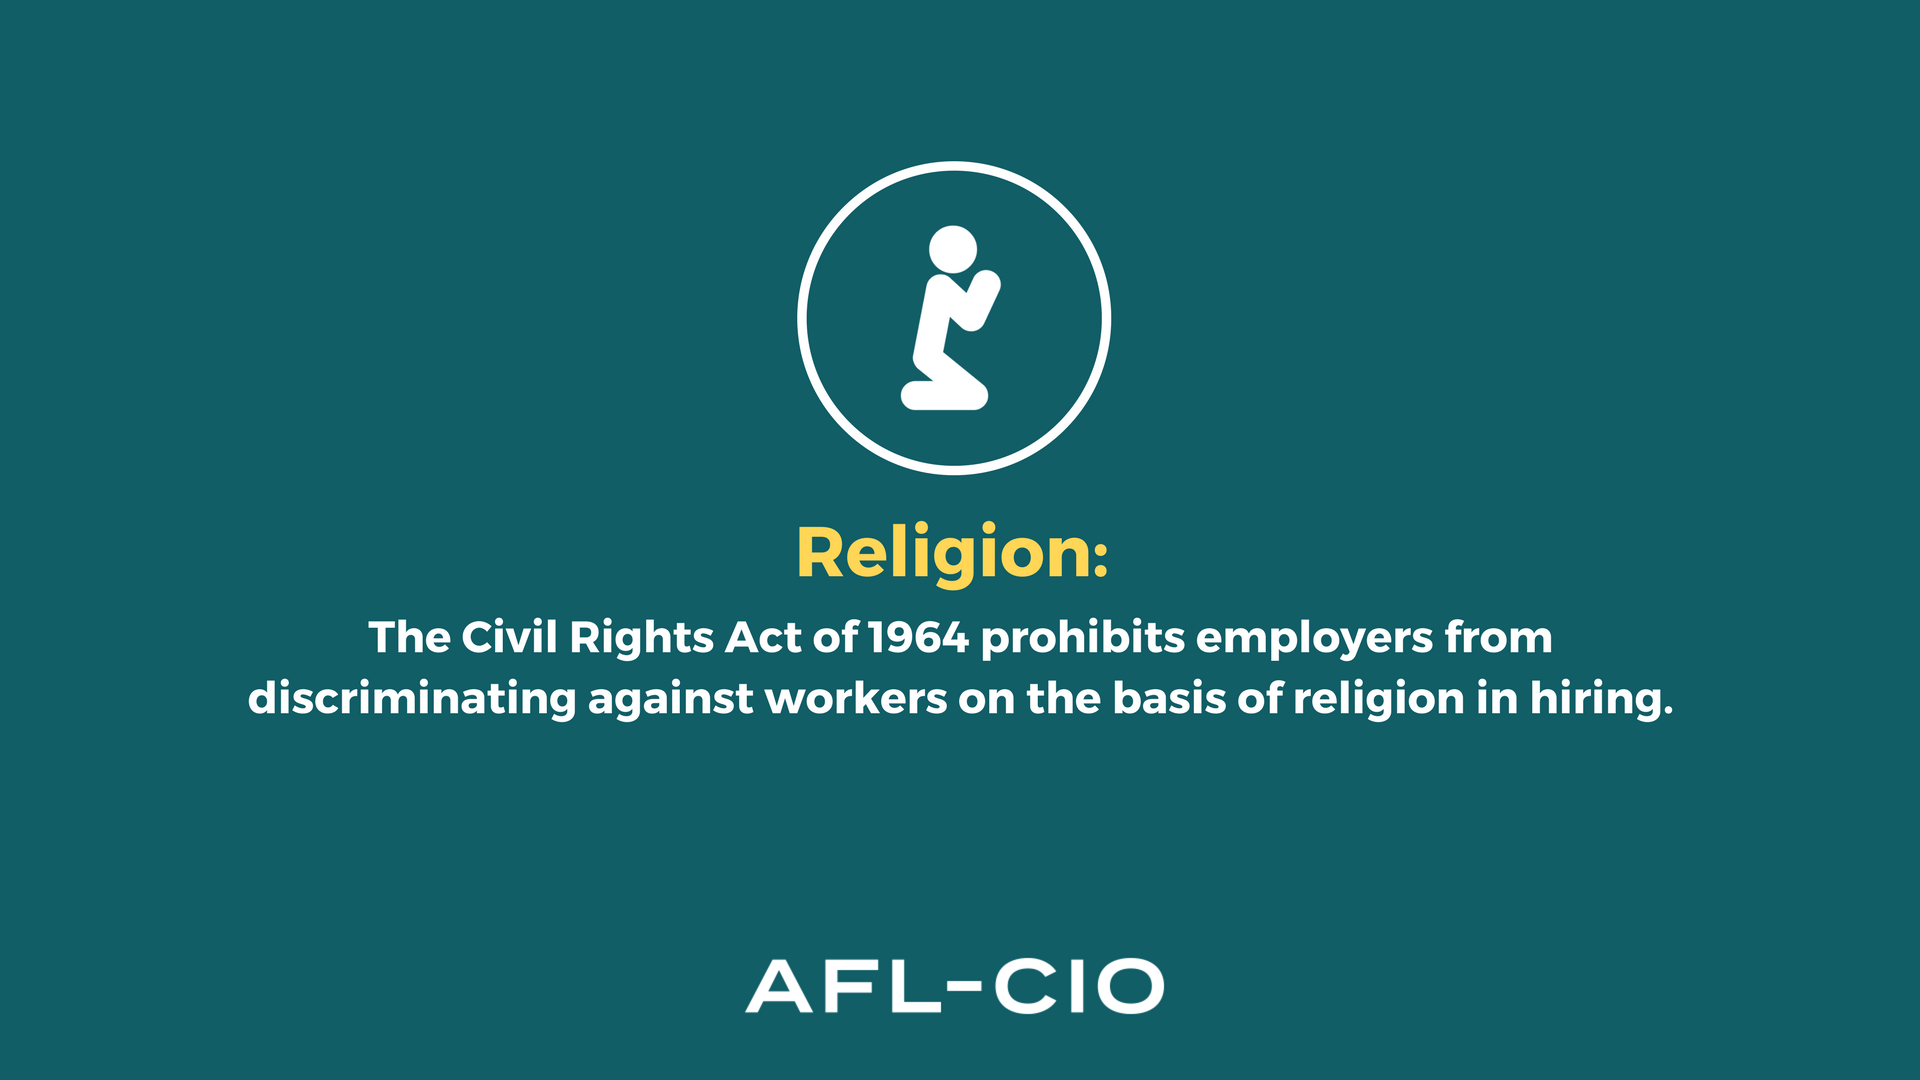 Religion: The Civil Rights Act of 1964 prohibits employers from discriminating against workers on the basis of religion in hiring.